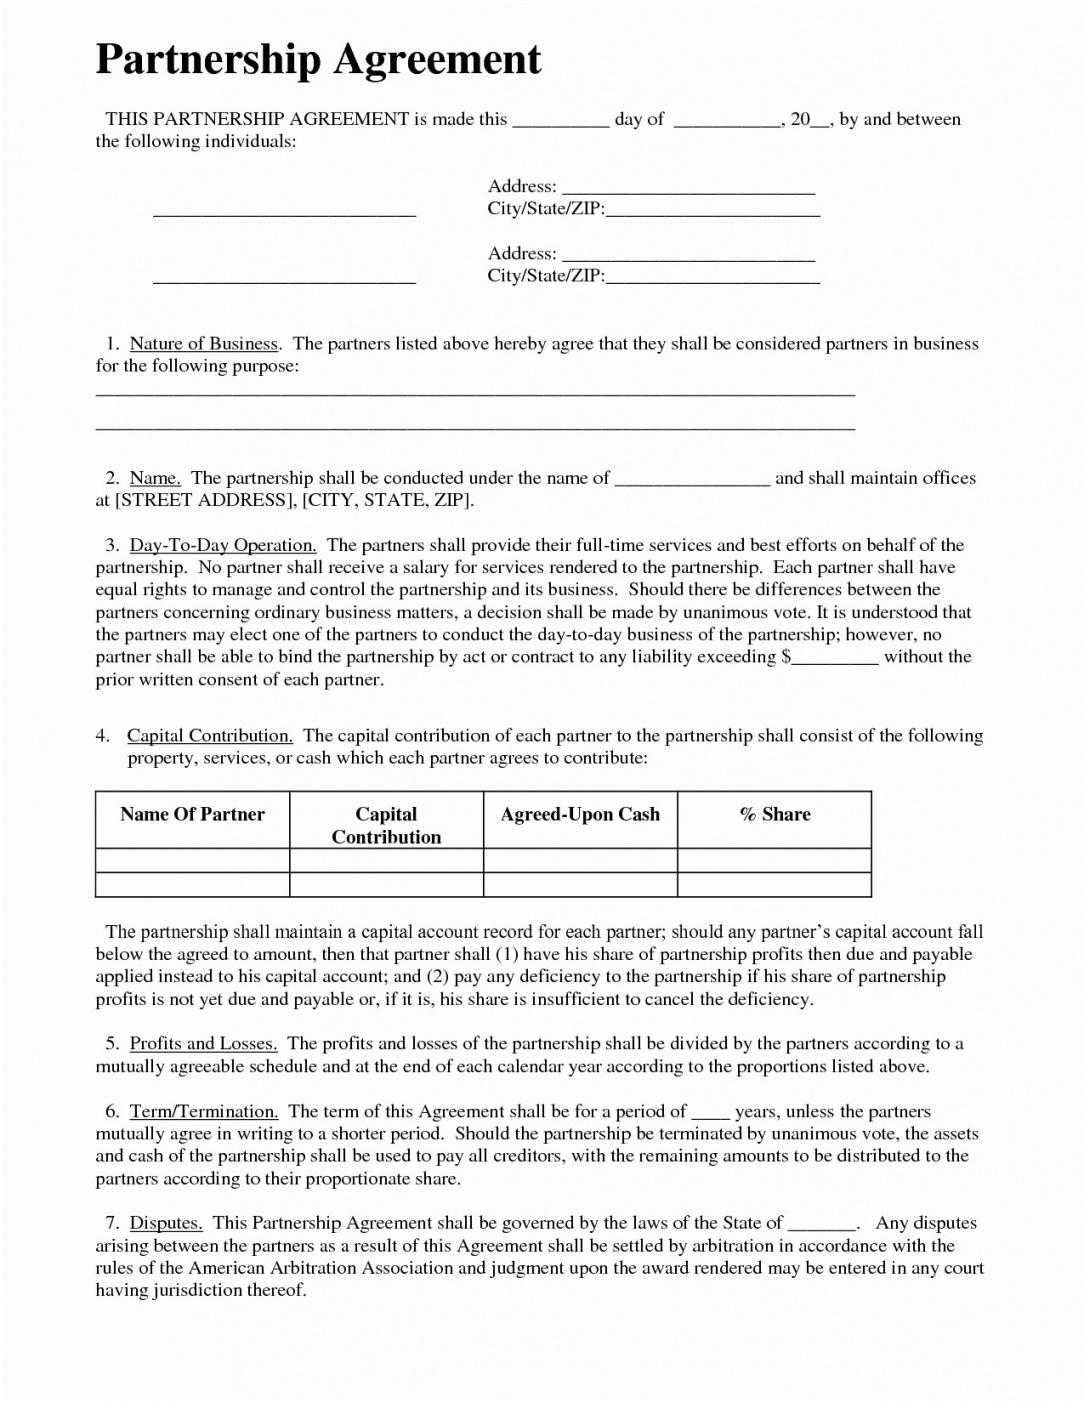 our boat partnership agreement form bill of sale generic mughals boat partnership agreement template